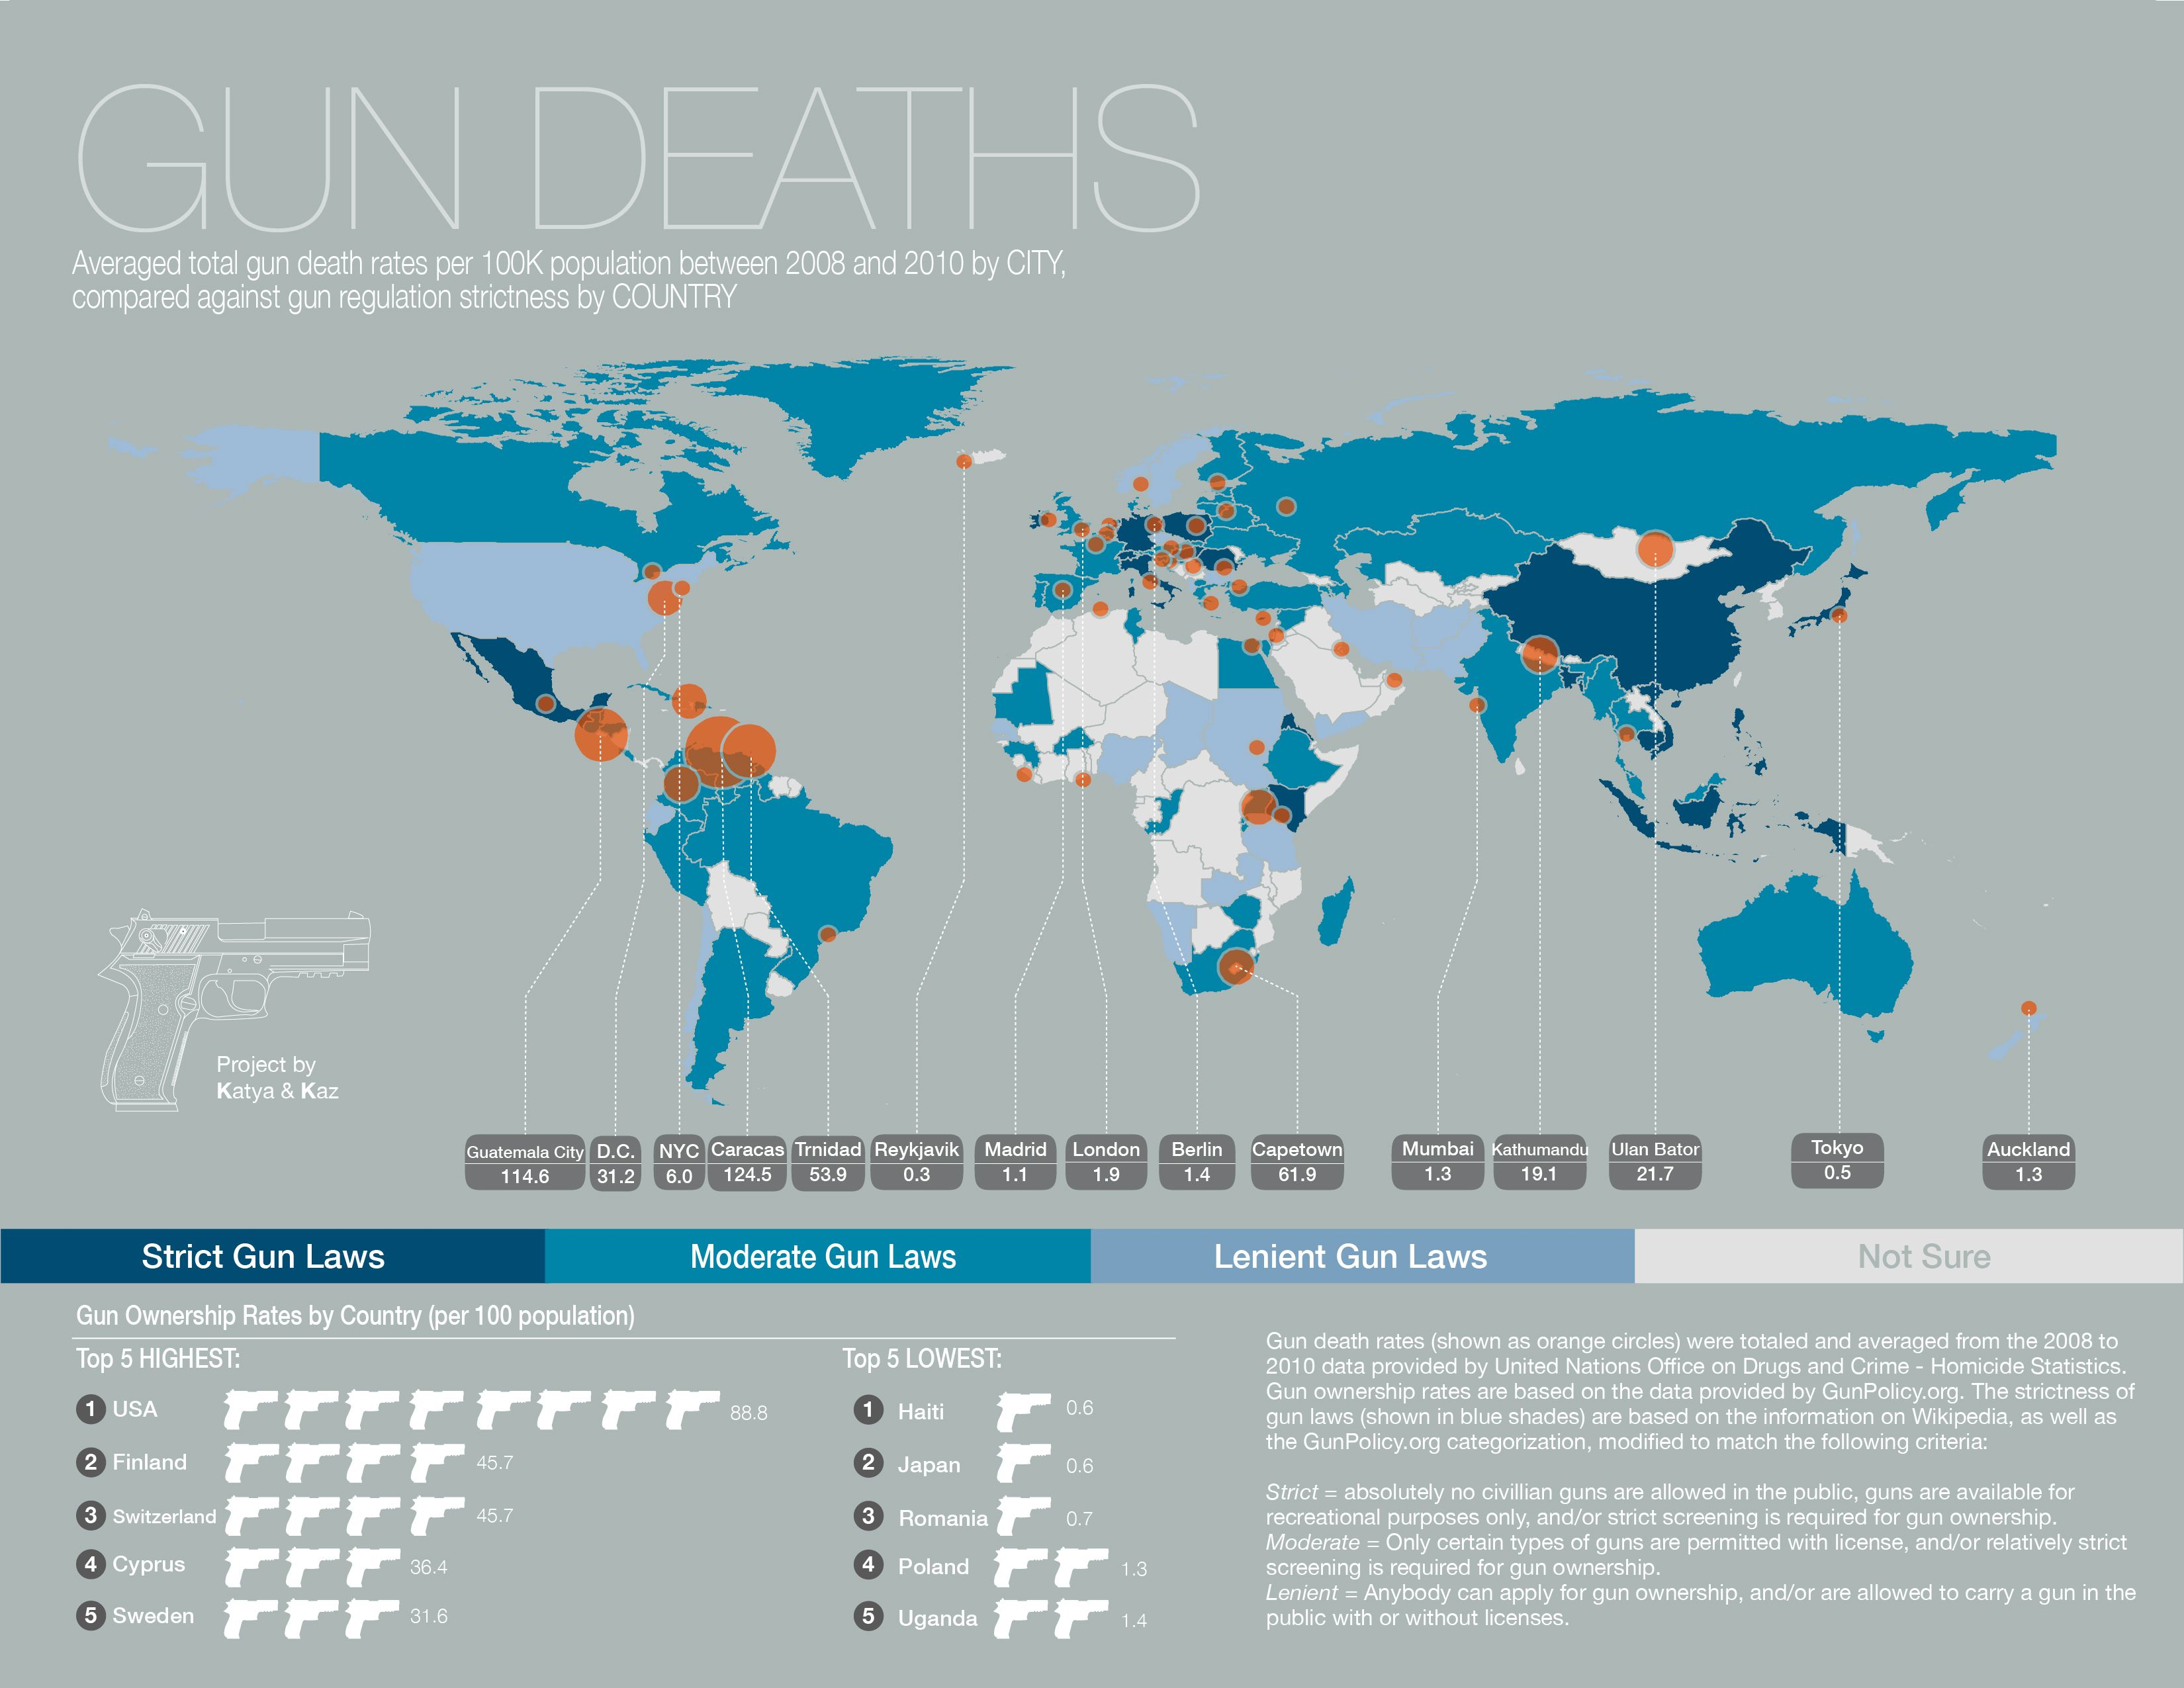 A world map of gun death rates per city compared against